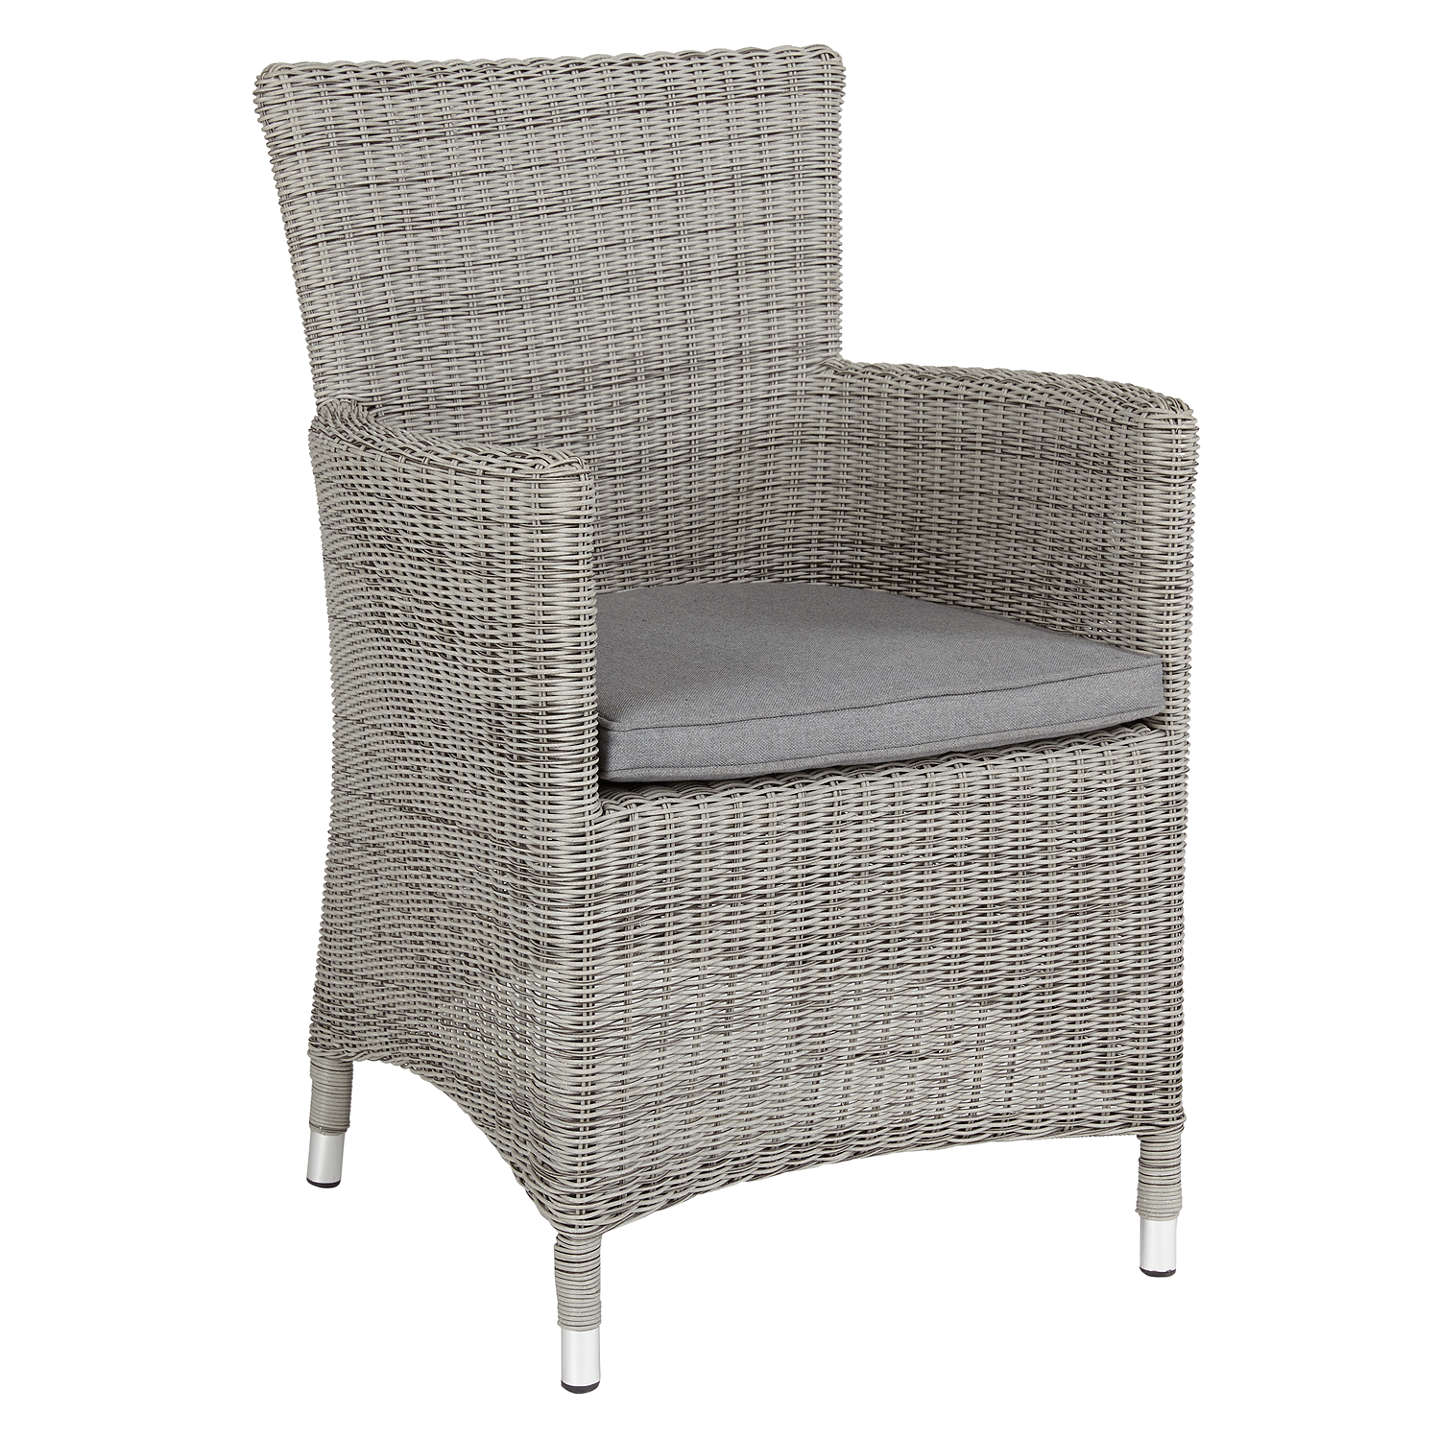 outdoor arm chair. BuyJohn Lewis Dante Outdoor Dining Armchair, Grey Online At Johnlewis.com Arm Chair T